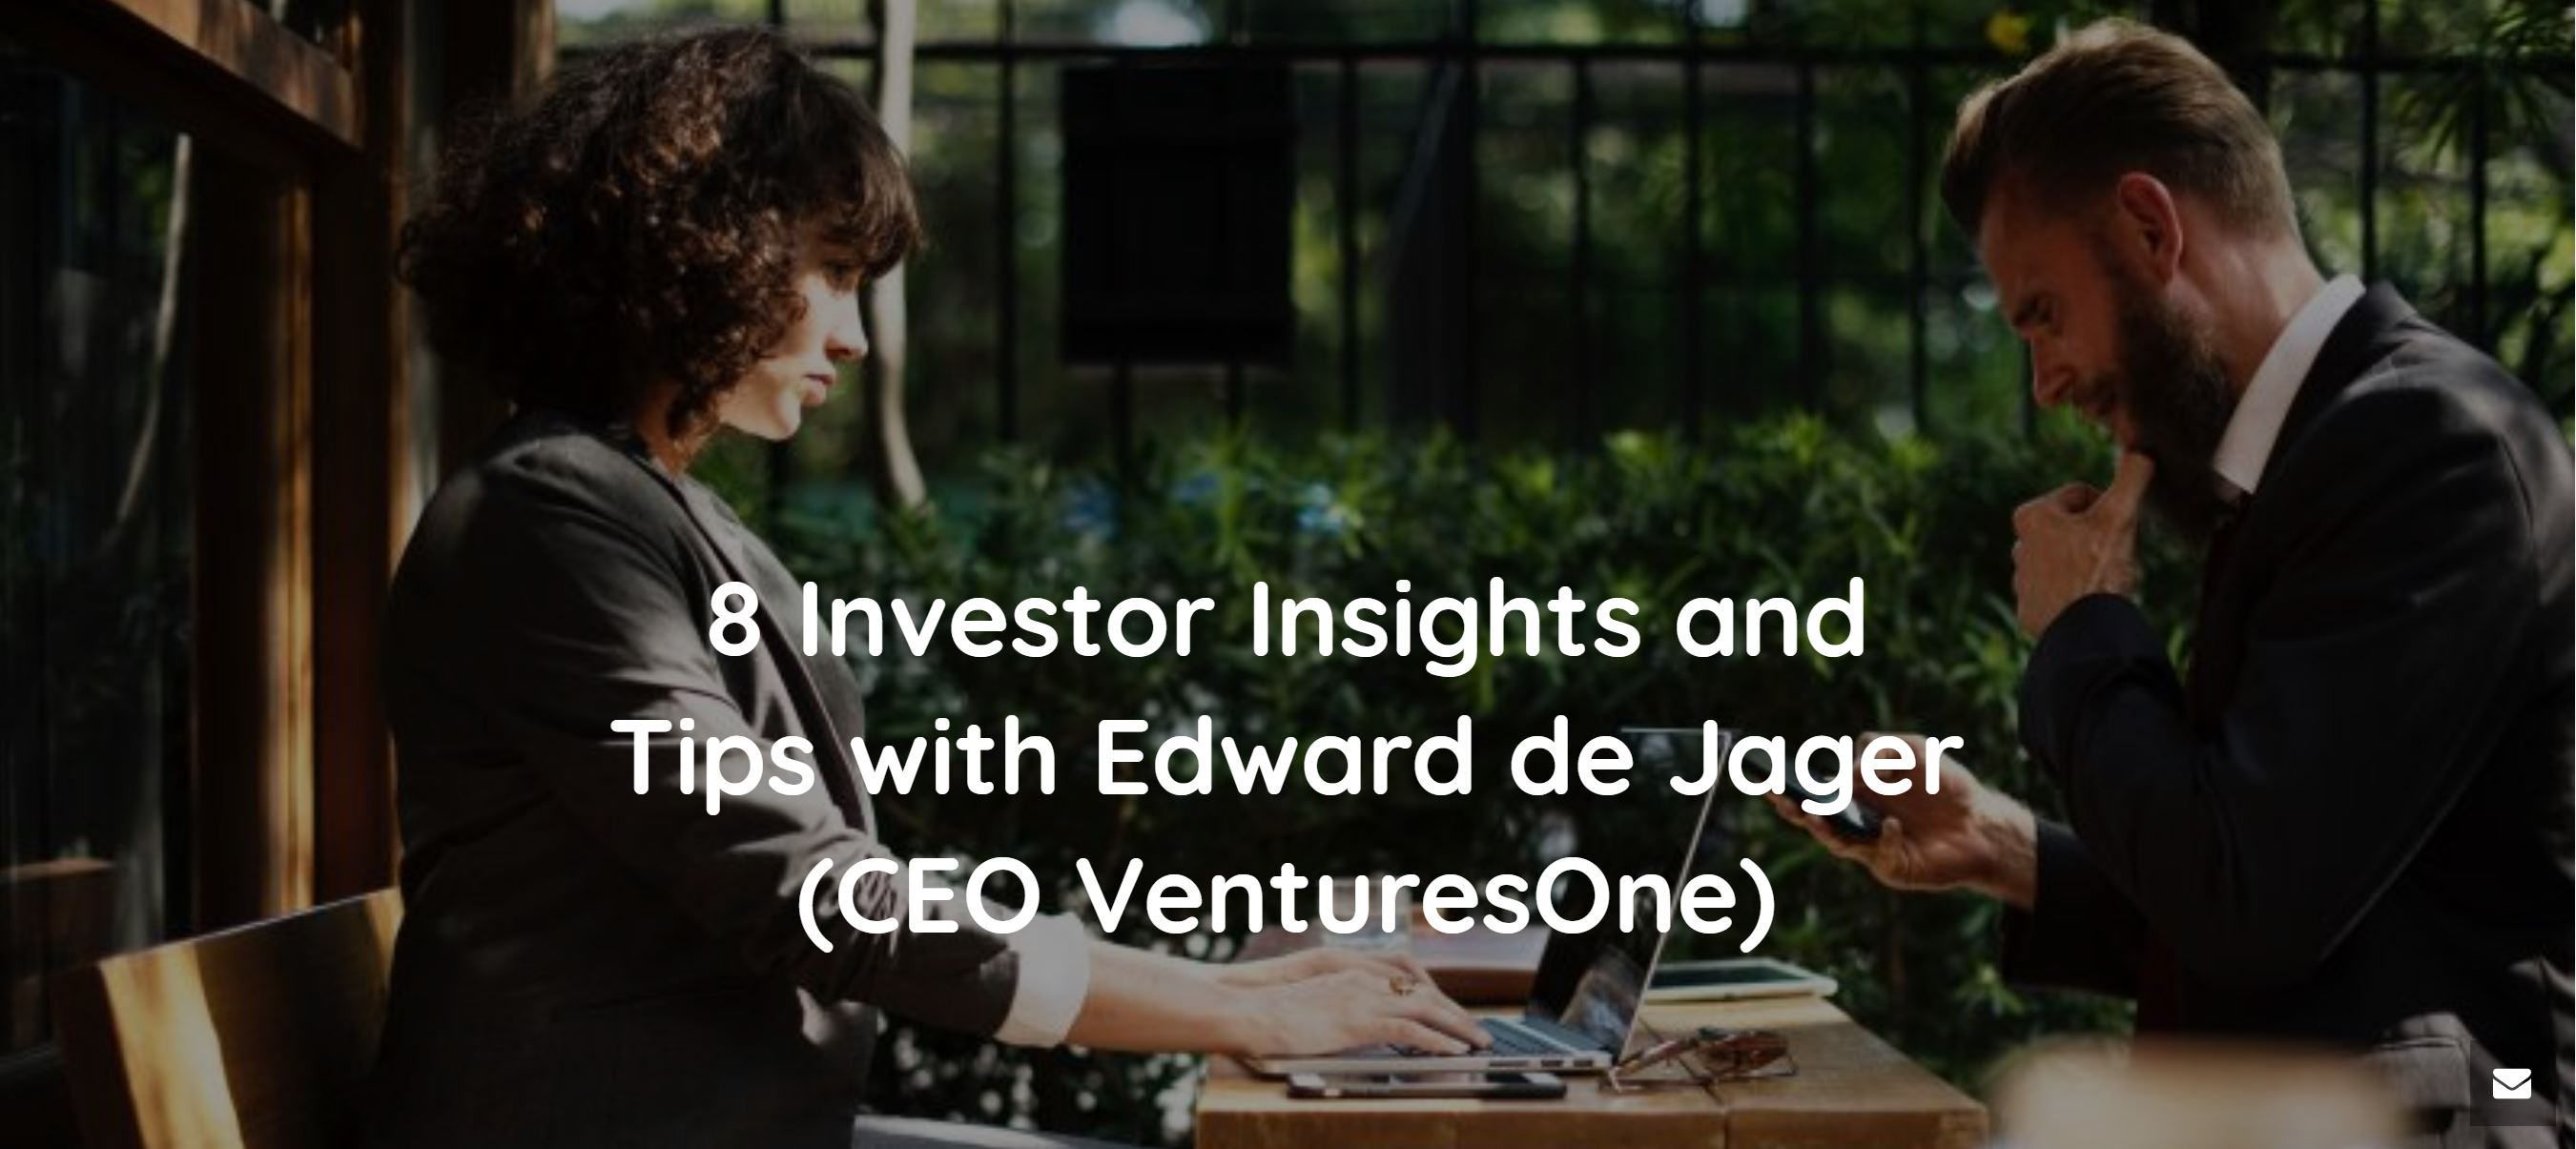 8 investor insights and tips with Edward de Jager (CEO VenturesOne)